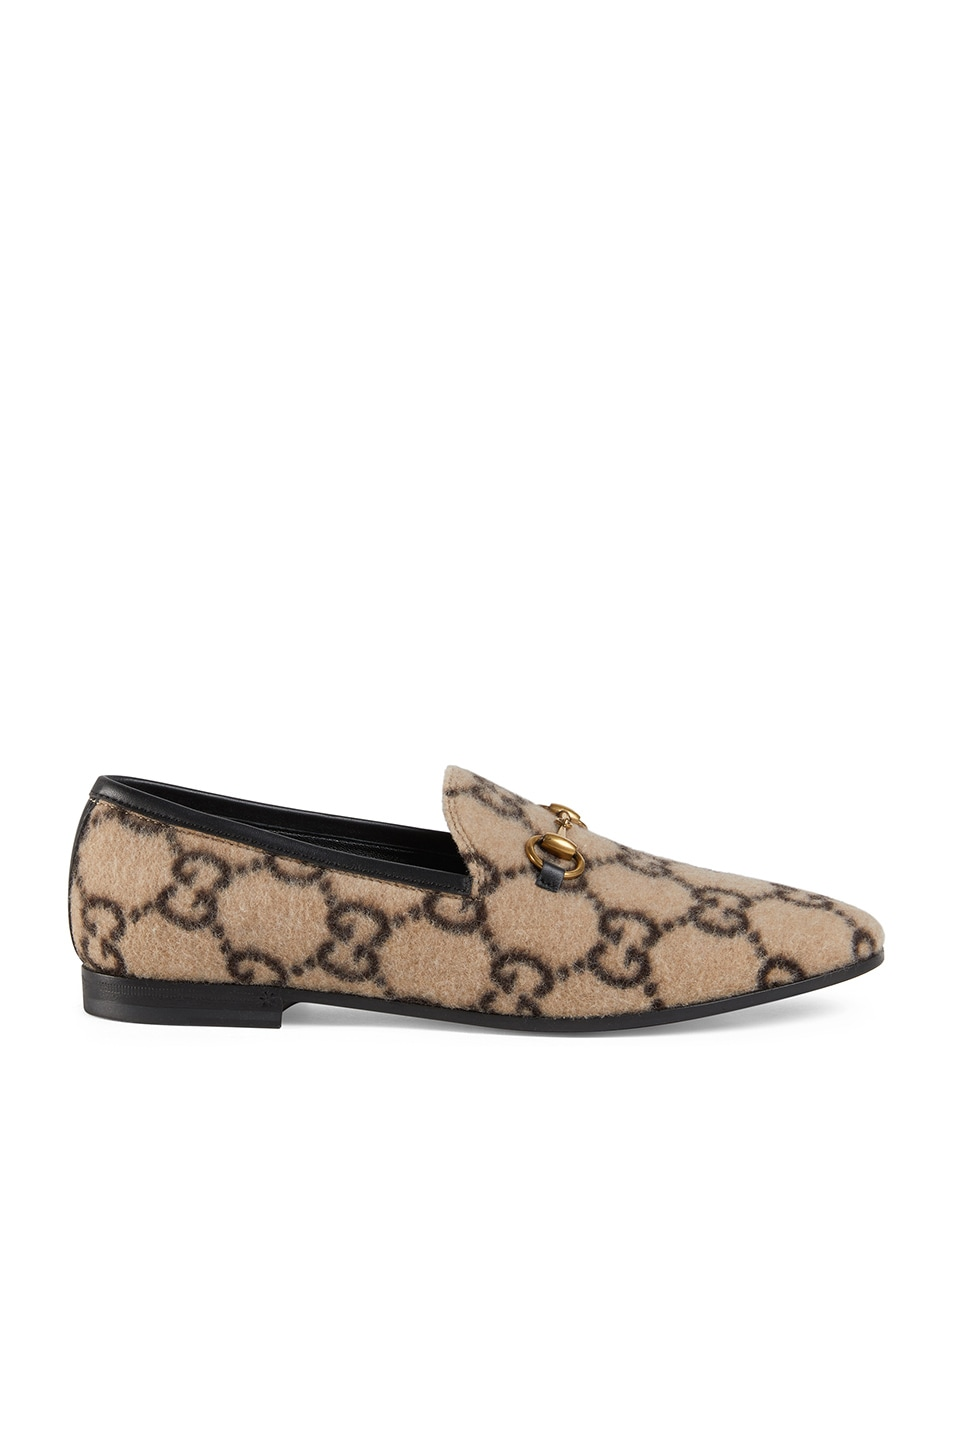 Image 1 of Gucci Jordaan Loafers in Beige Ebony & Black